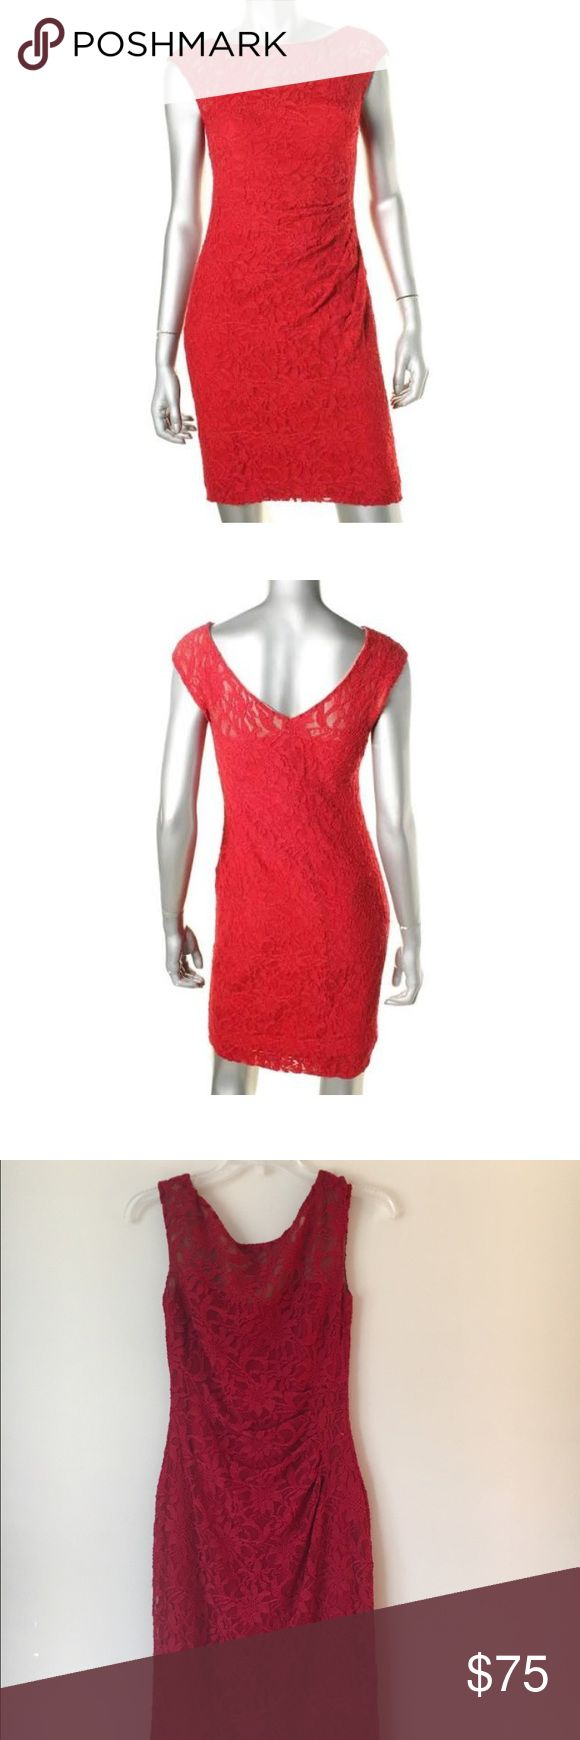 Ralph Lauren beautiful red lace cocktail dress Lace detail, tight fitting but stretchy dress. Great for cocktail parties, weddings, etc. Worn twice. Ralph Lauren Dresses Mini